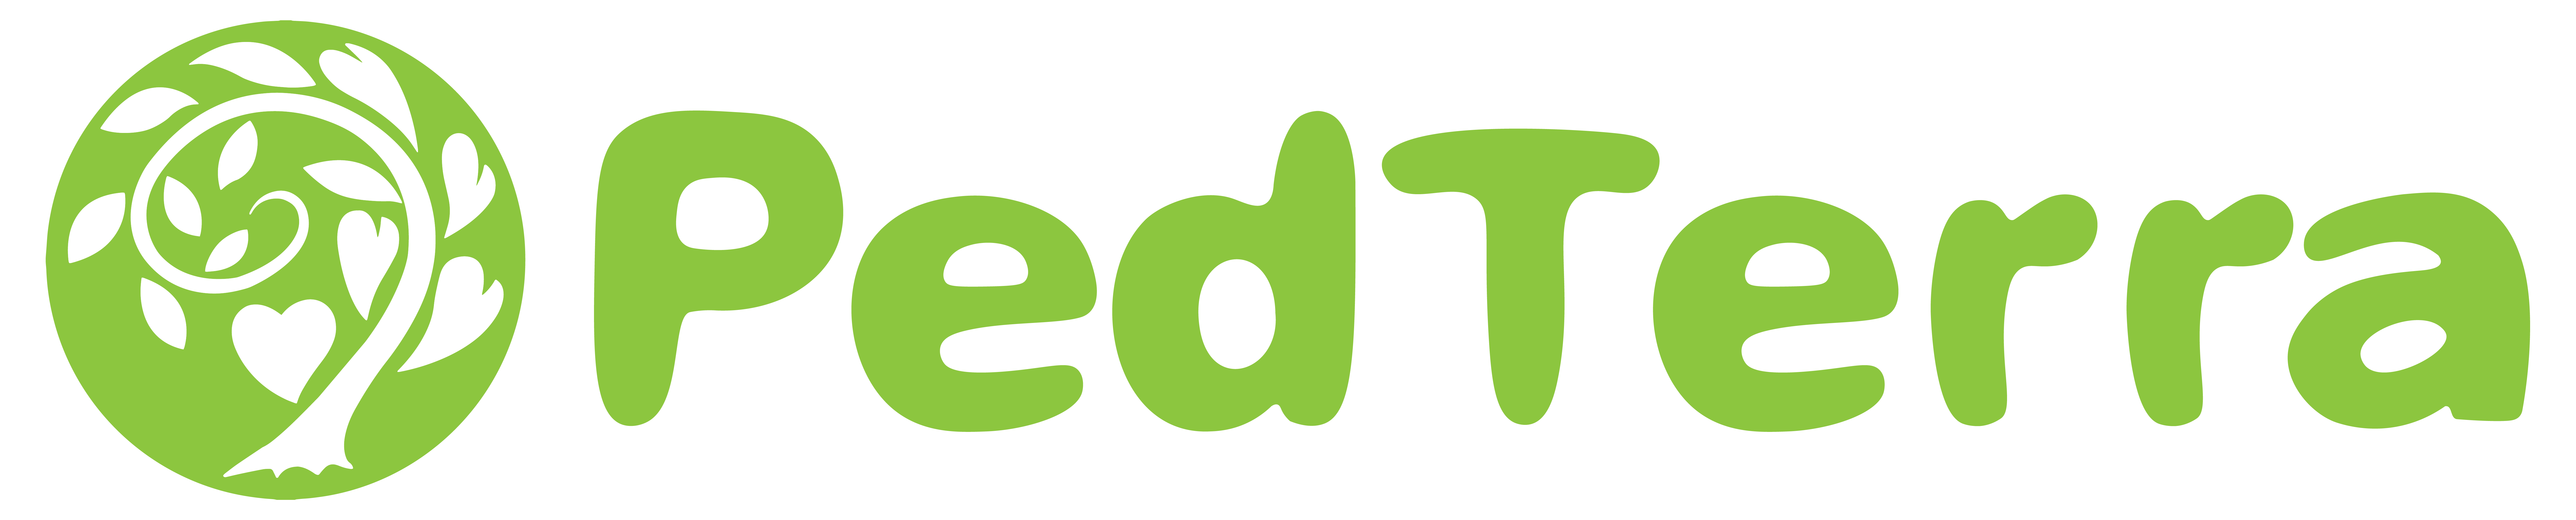 PedTerra Logo and Text